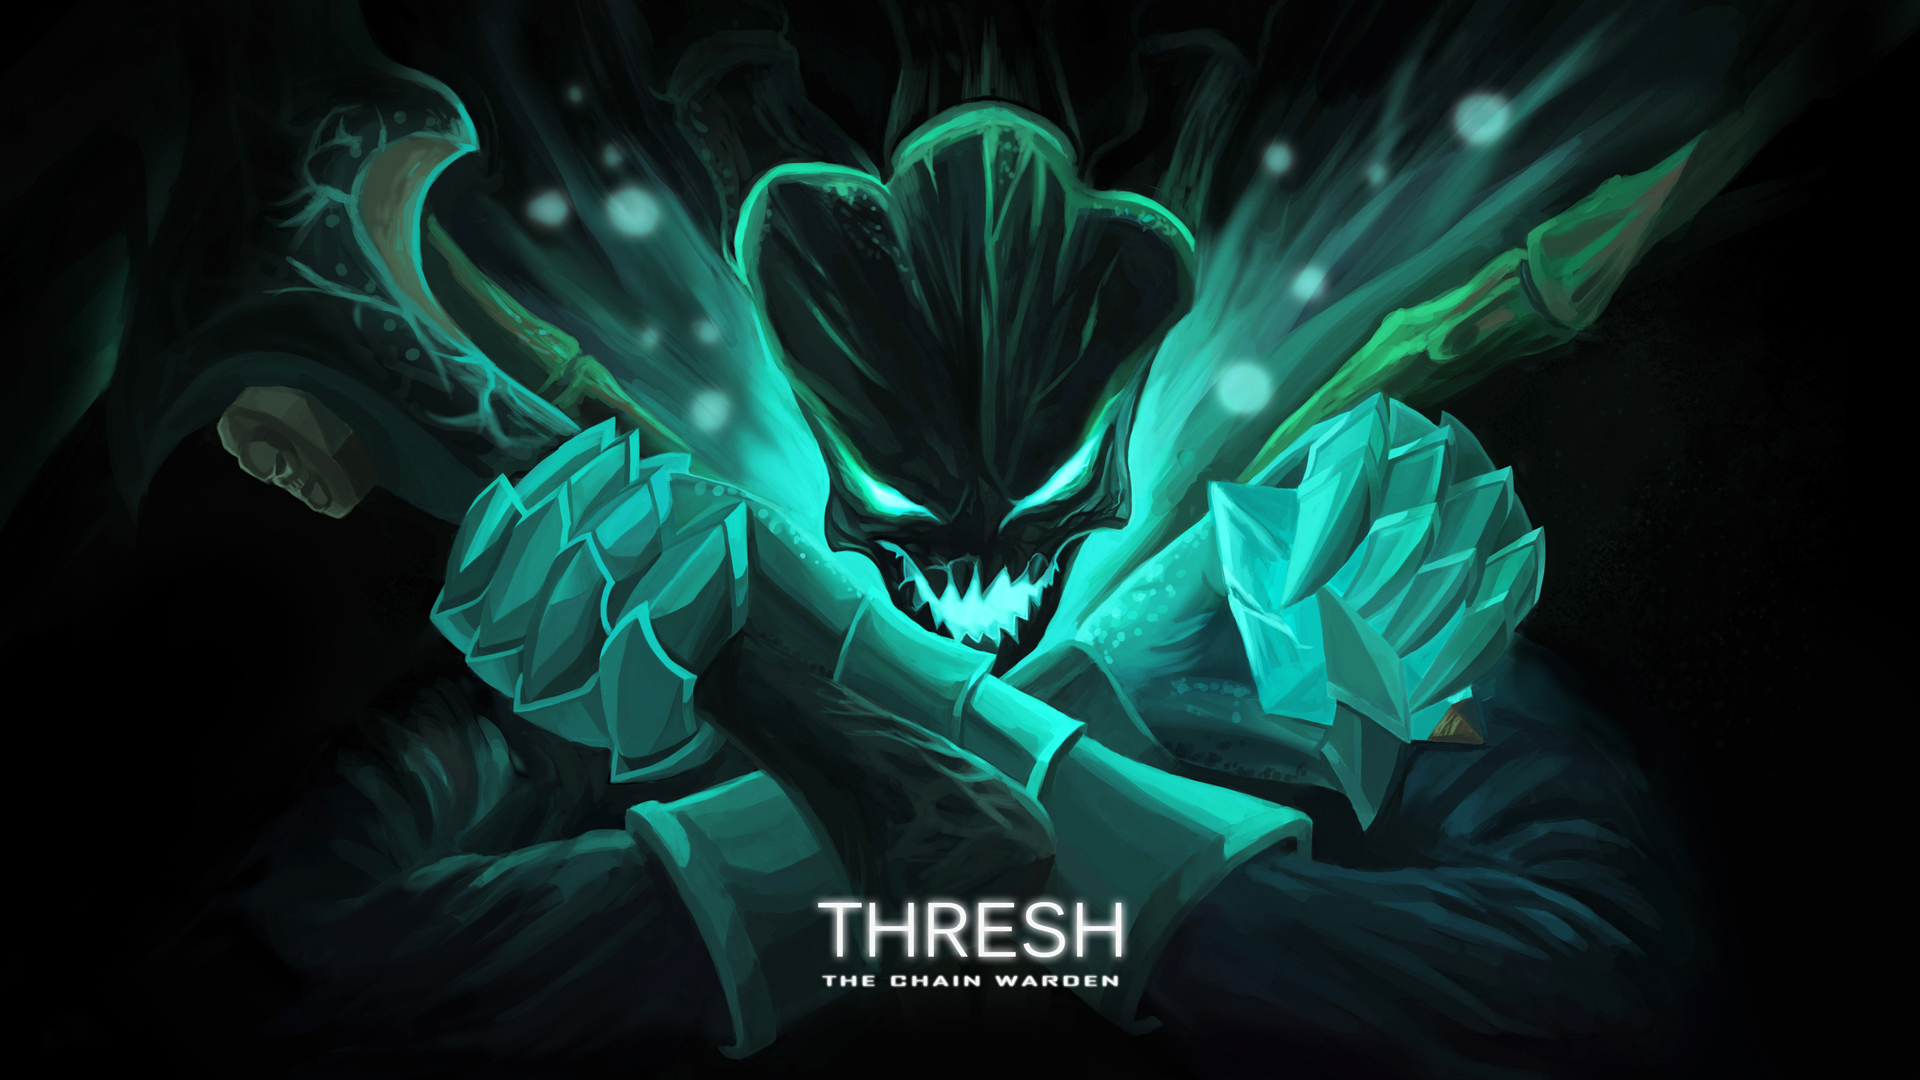 Thresh League Of Legends Details Wallpapers Supertab Themes